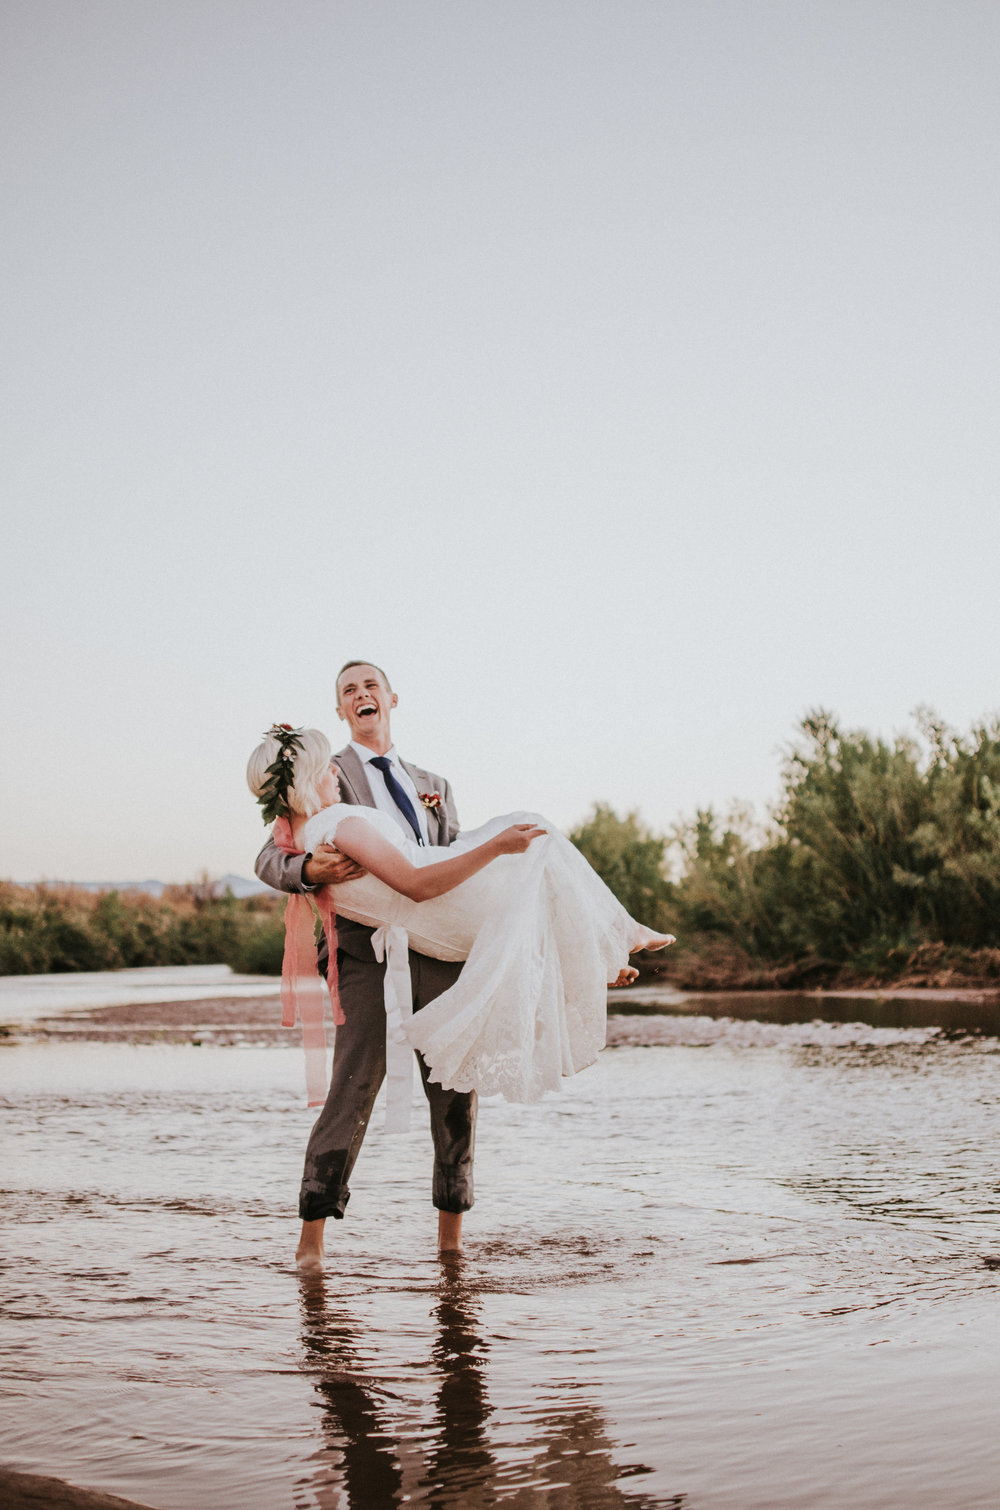 Virgin River Elopement | Utah Elopement and Wedding Photographer | Simply Amor Photography